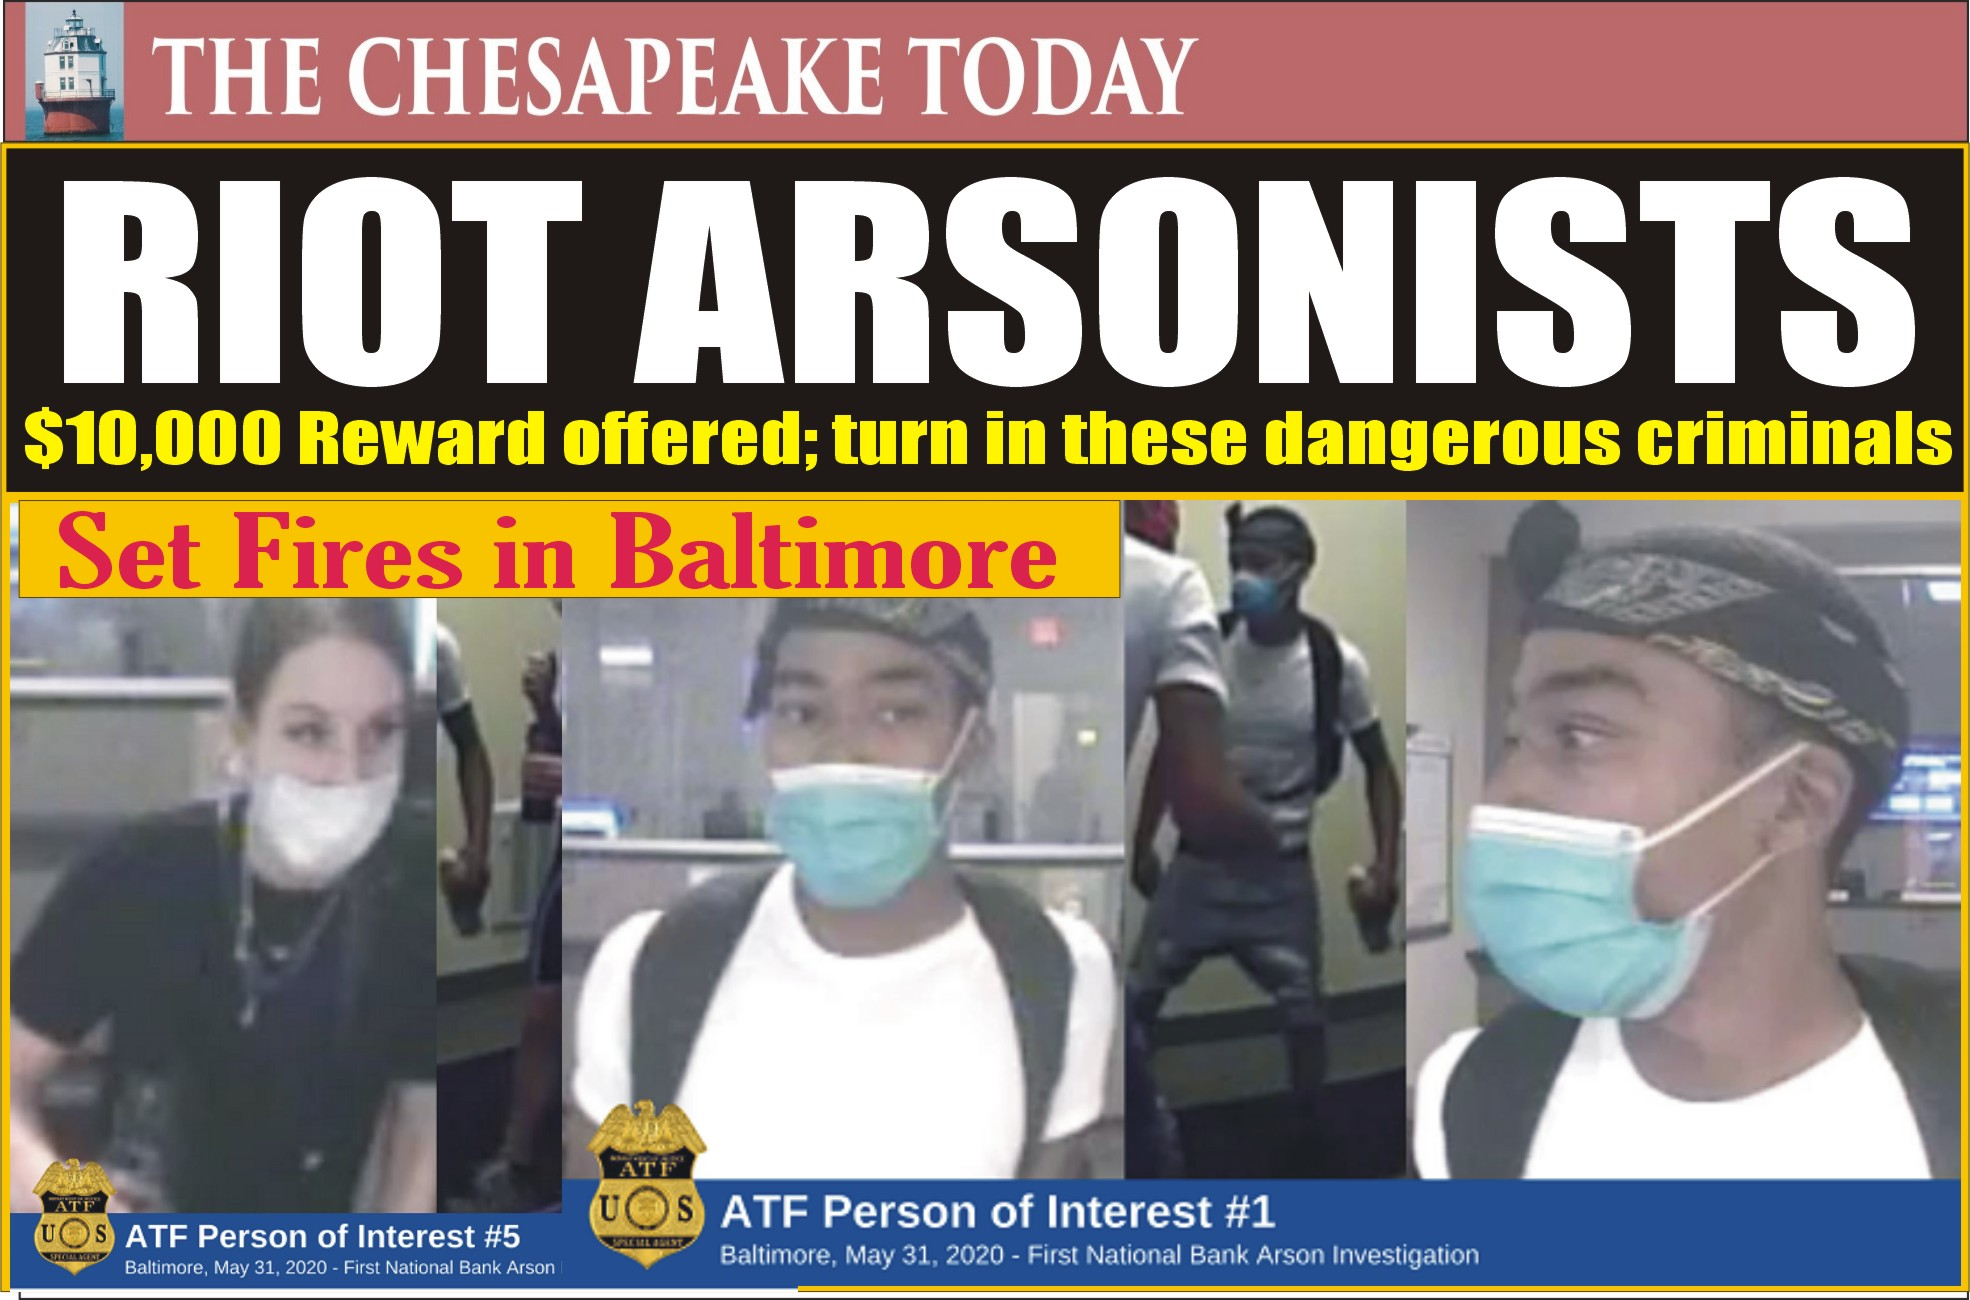 RIOTERS WHO COMMITTED ARSON: Collect reward for turning in these firebug criminals